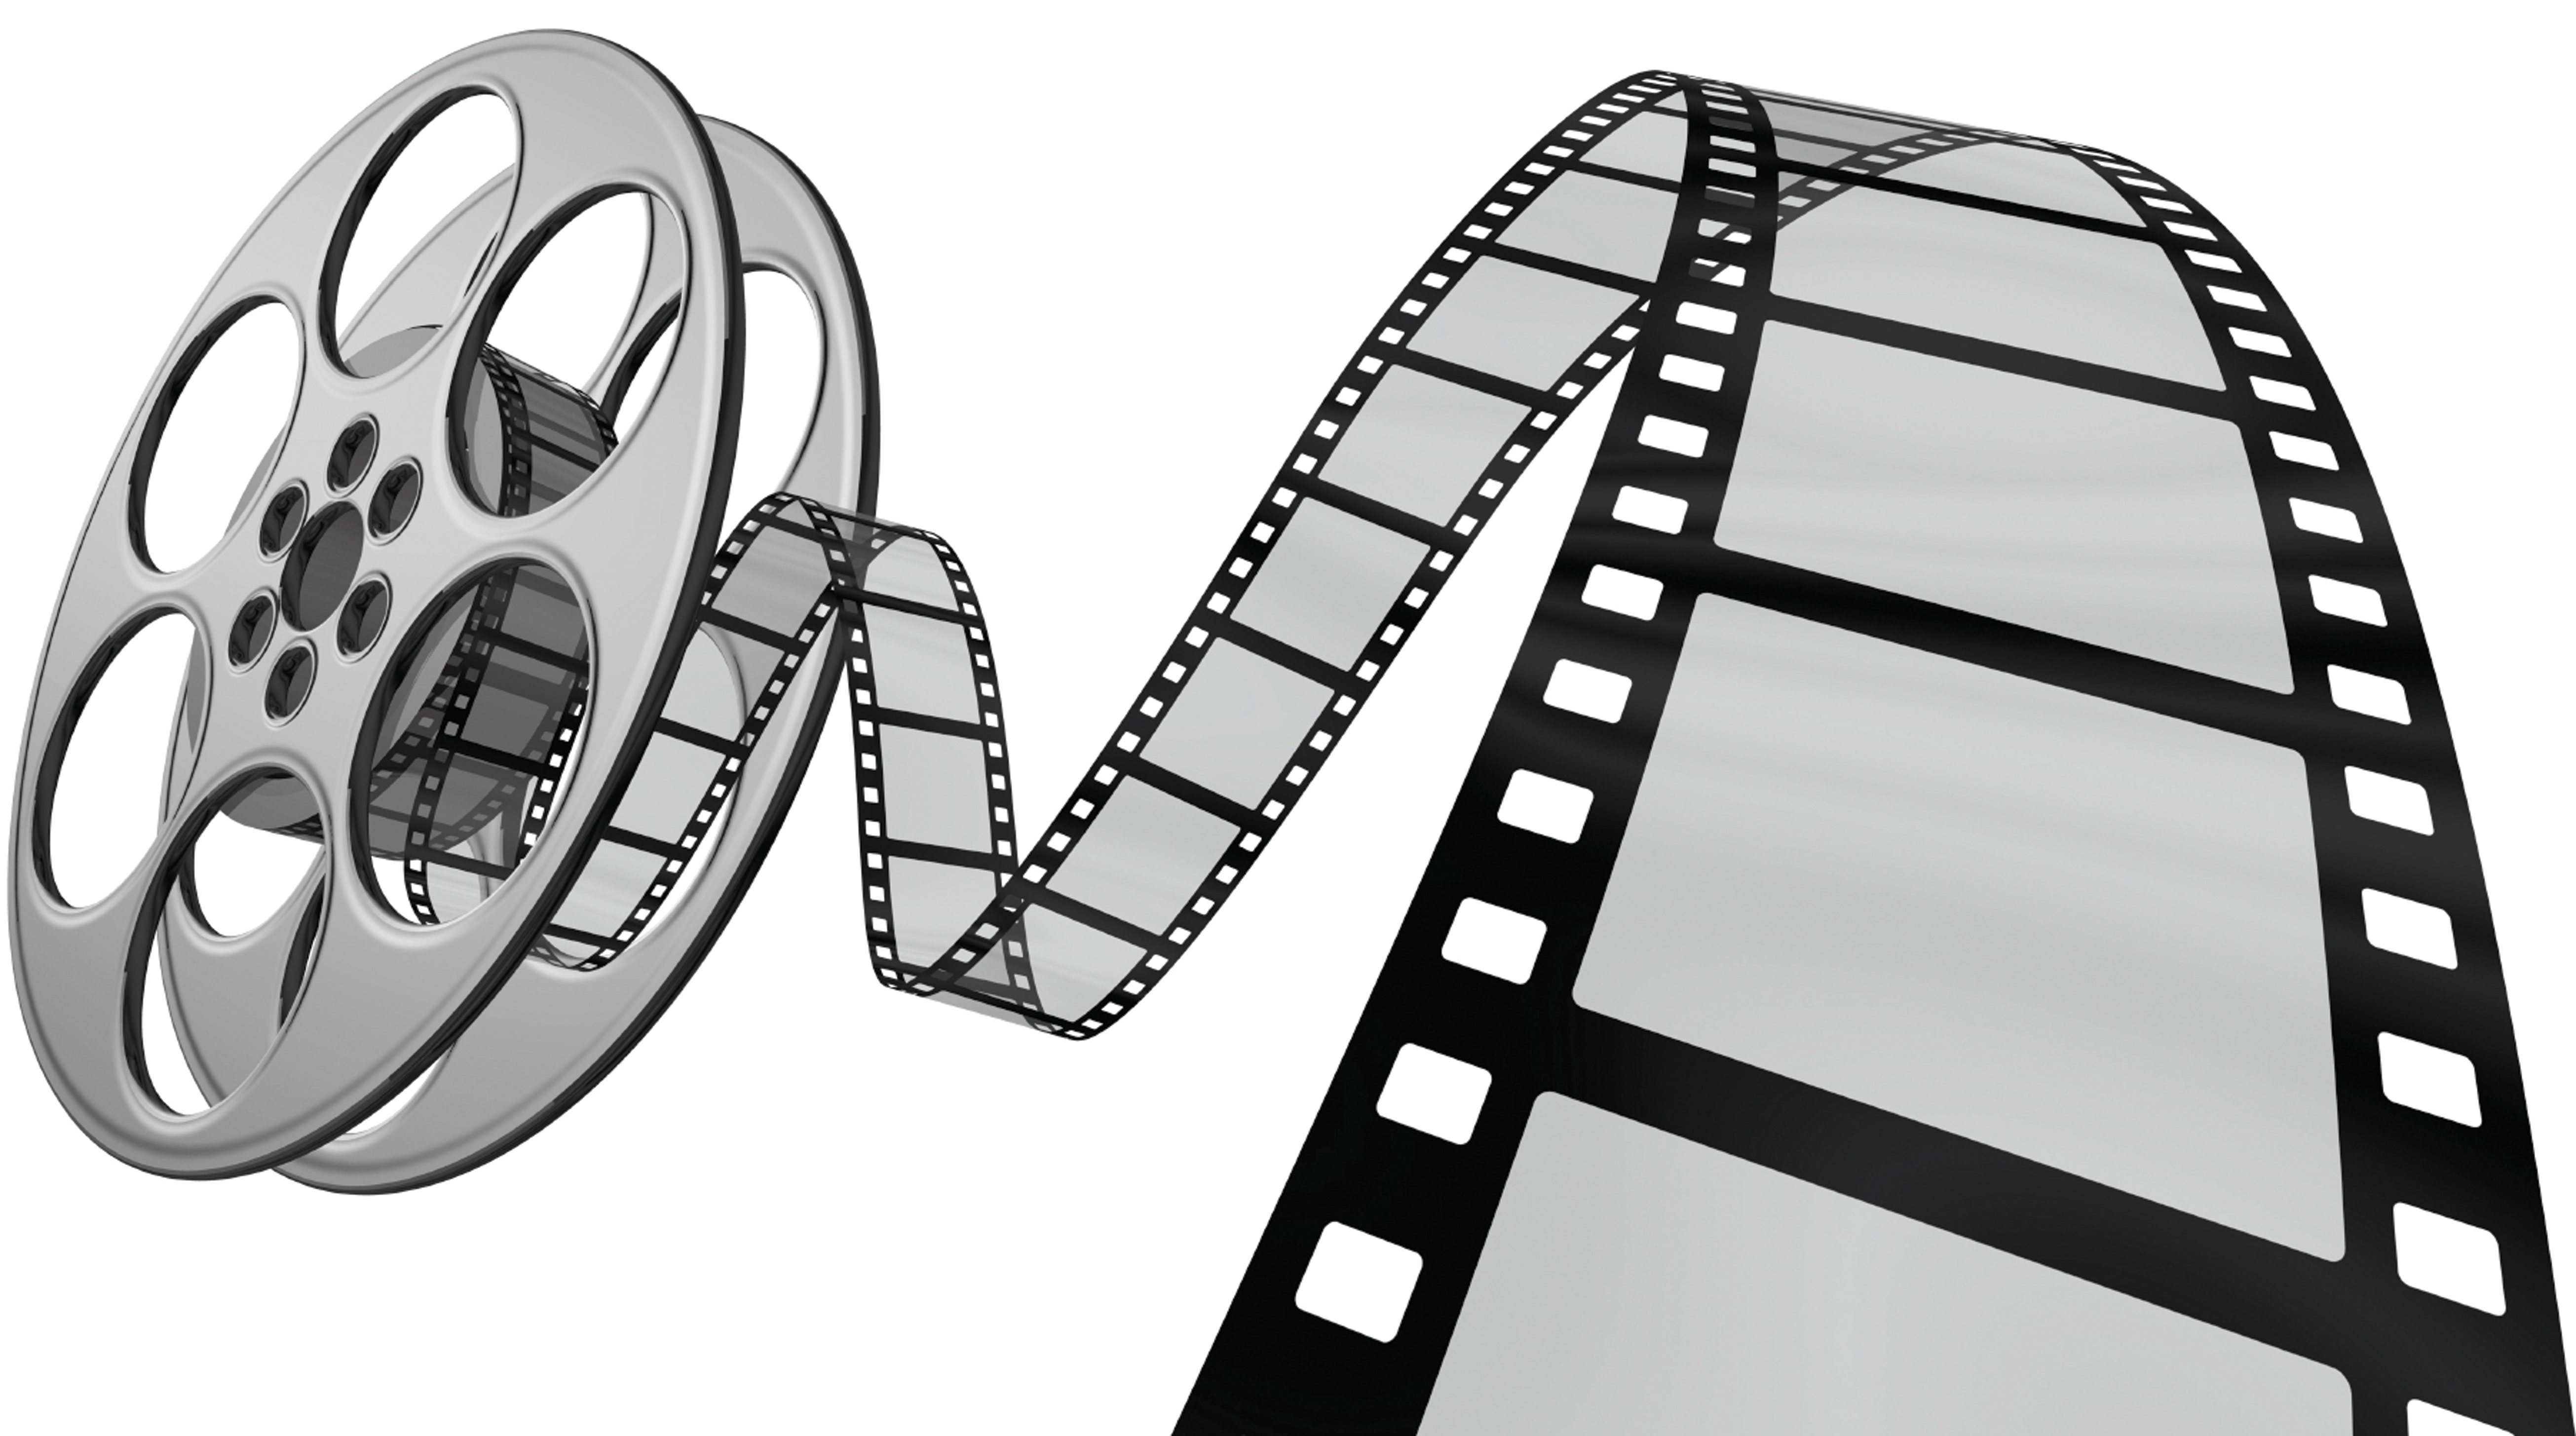 Movie reel clipart images clip art royalty free Movie Reel Clipart & Look At Clip Art Images - ClipartLook clip art royalty free